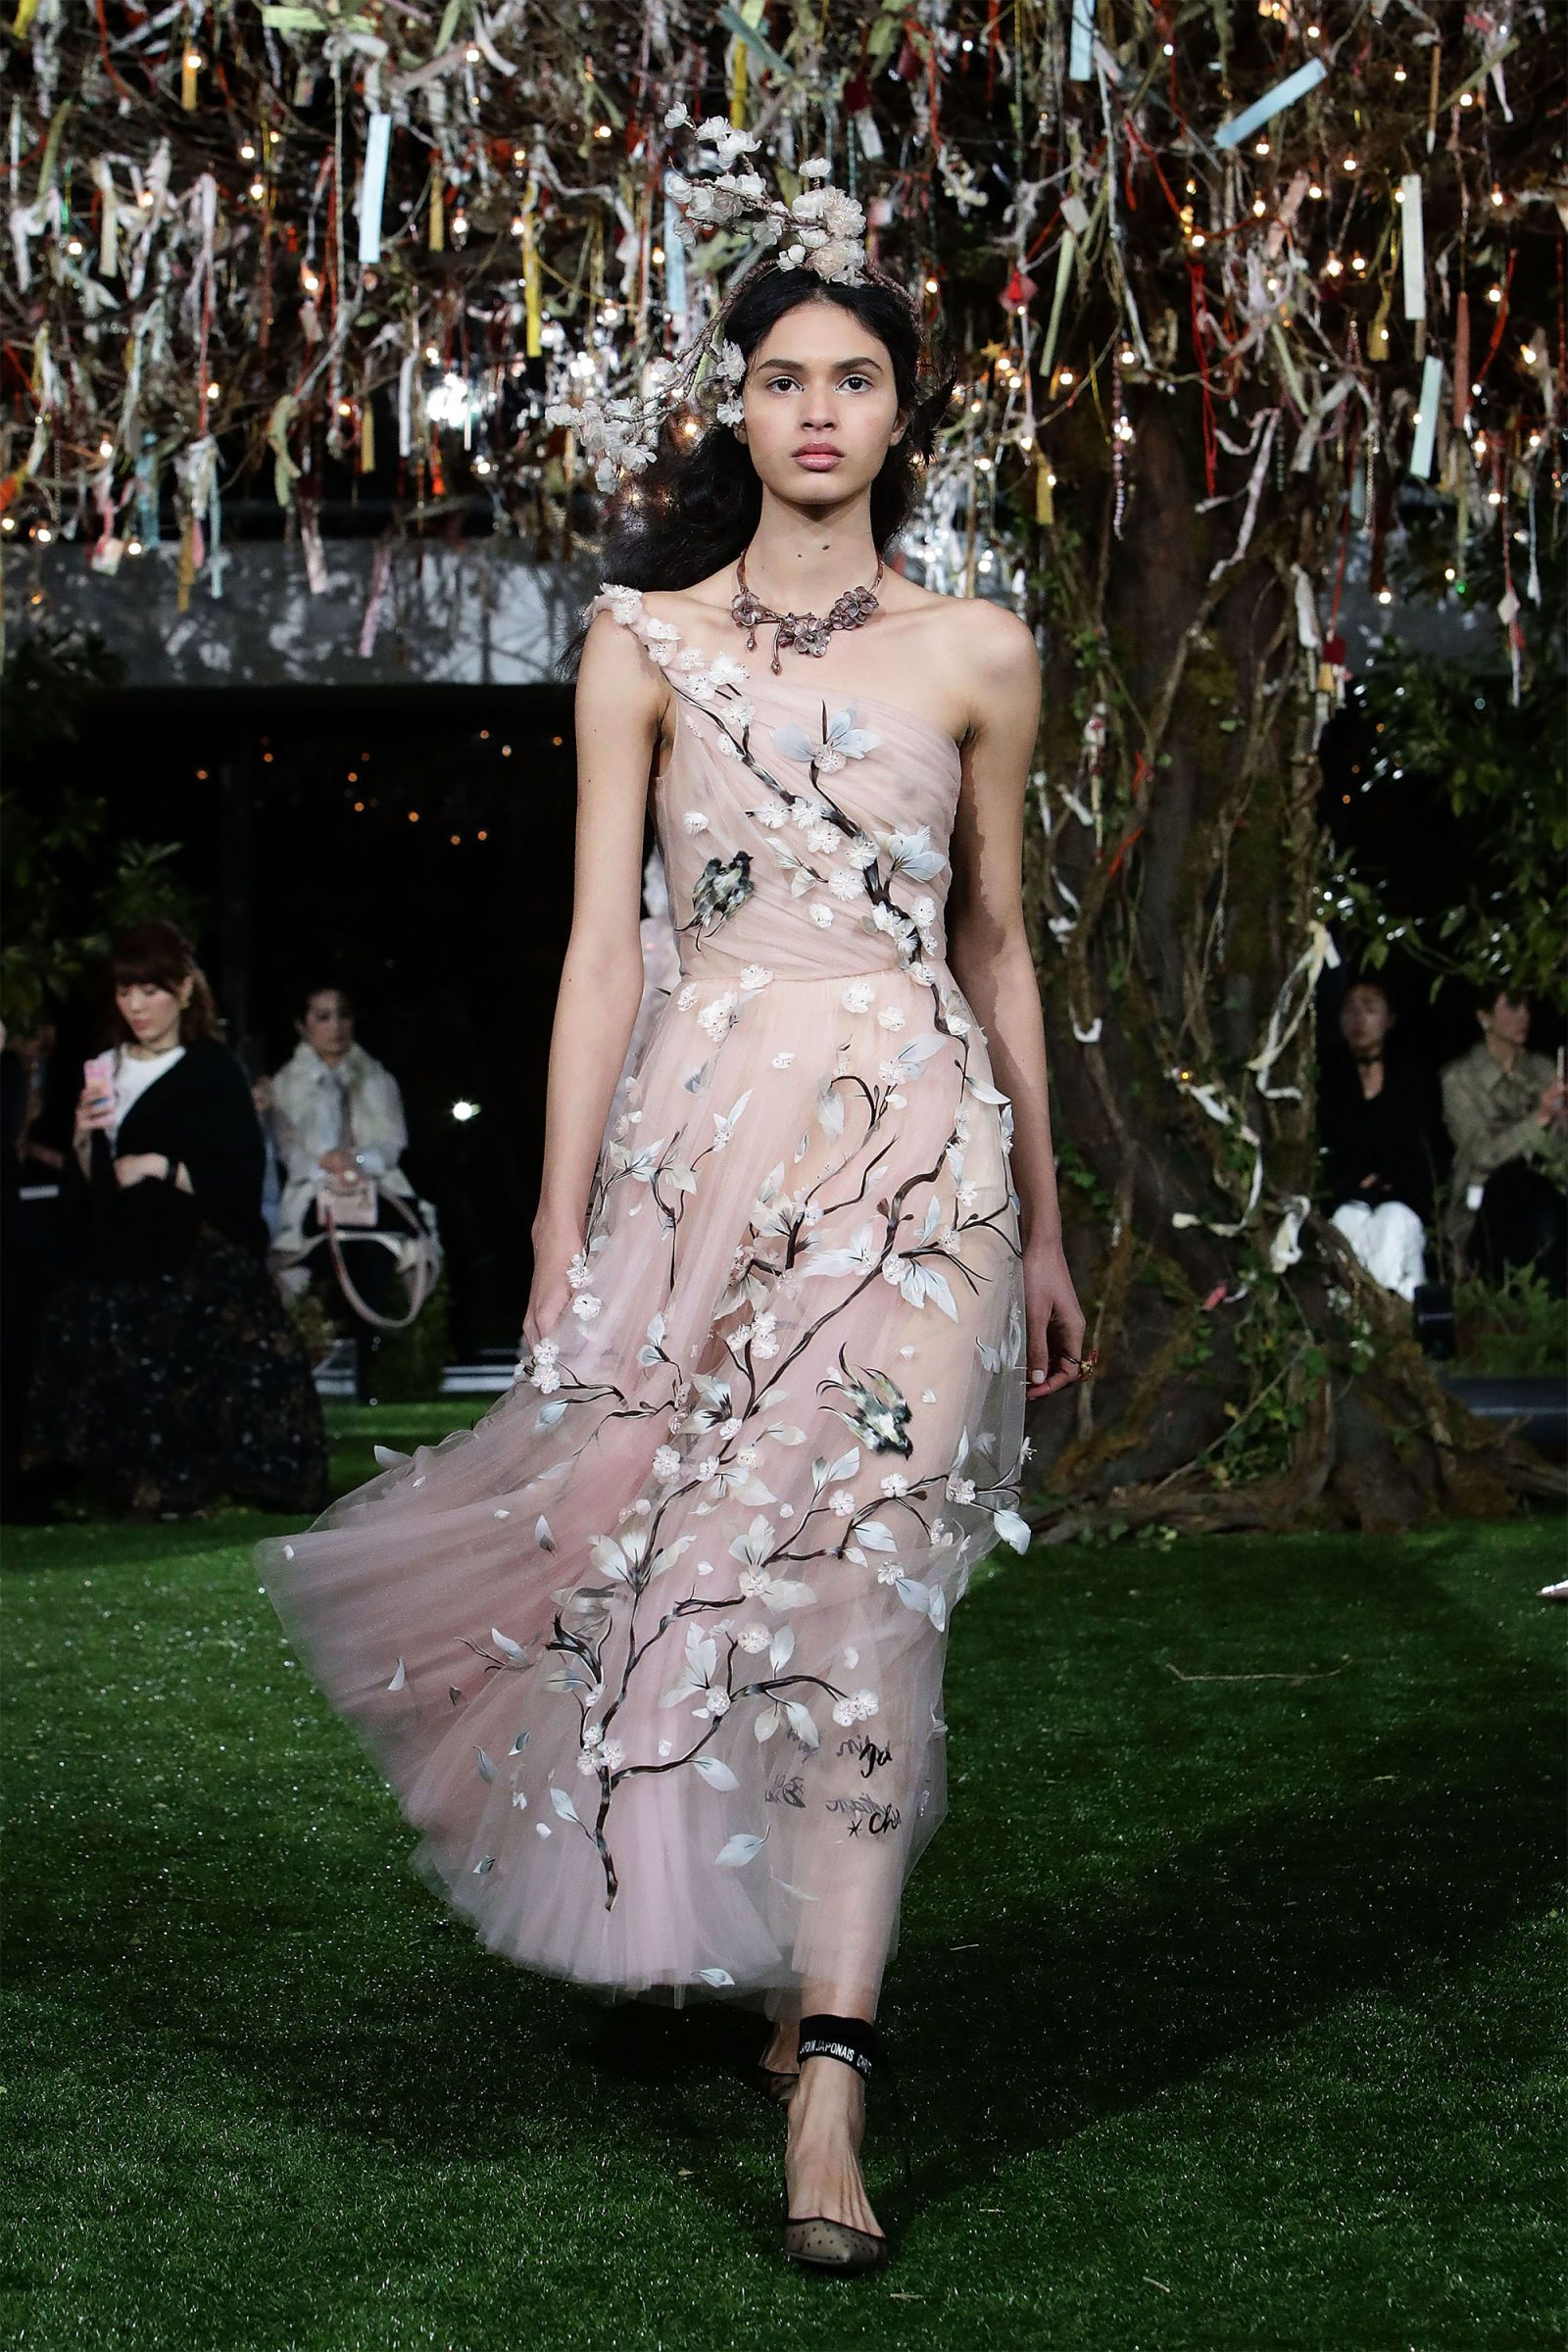 Dior Unveils Stunning Cherry Blossom-Inspired Couture Gowns in